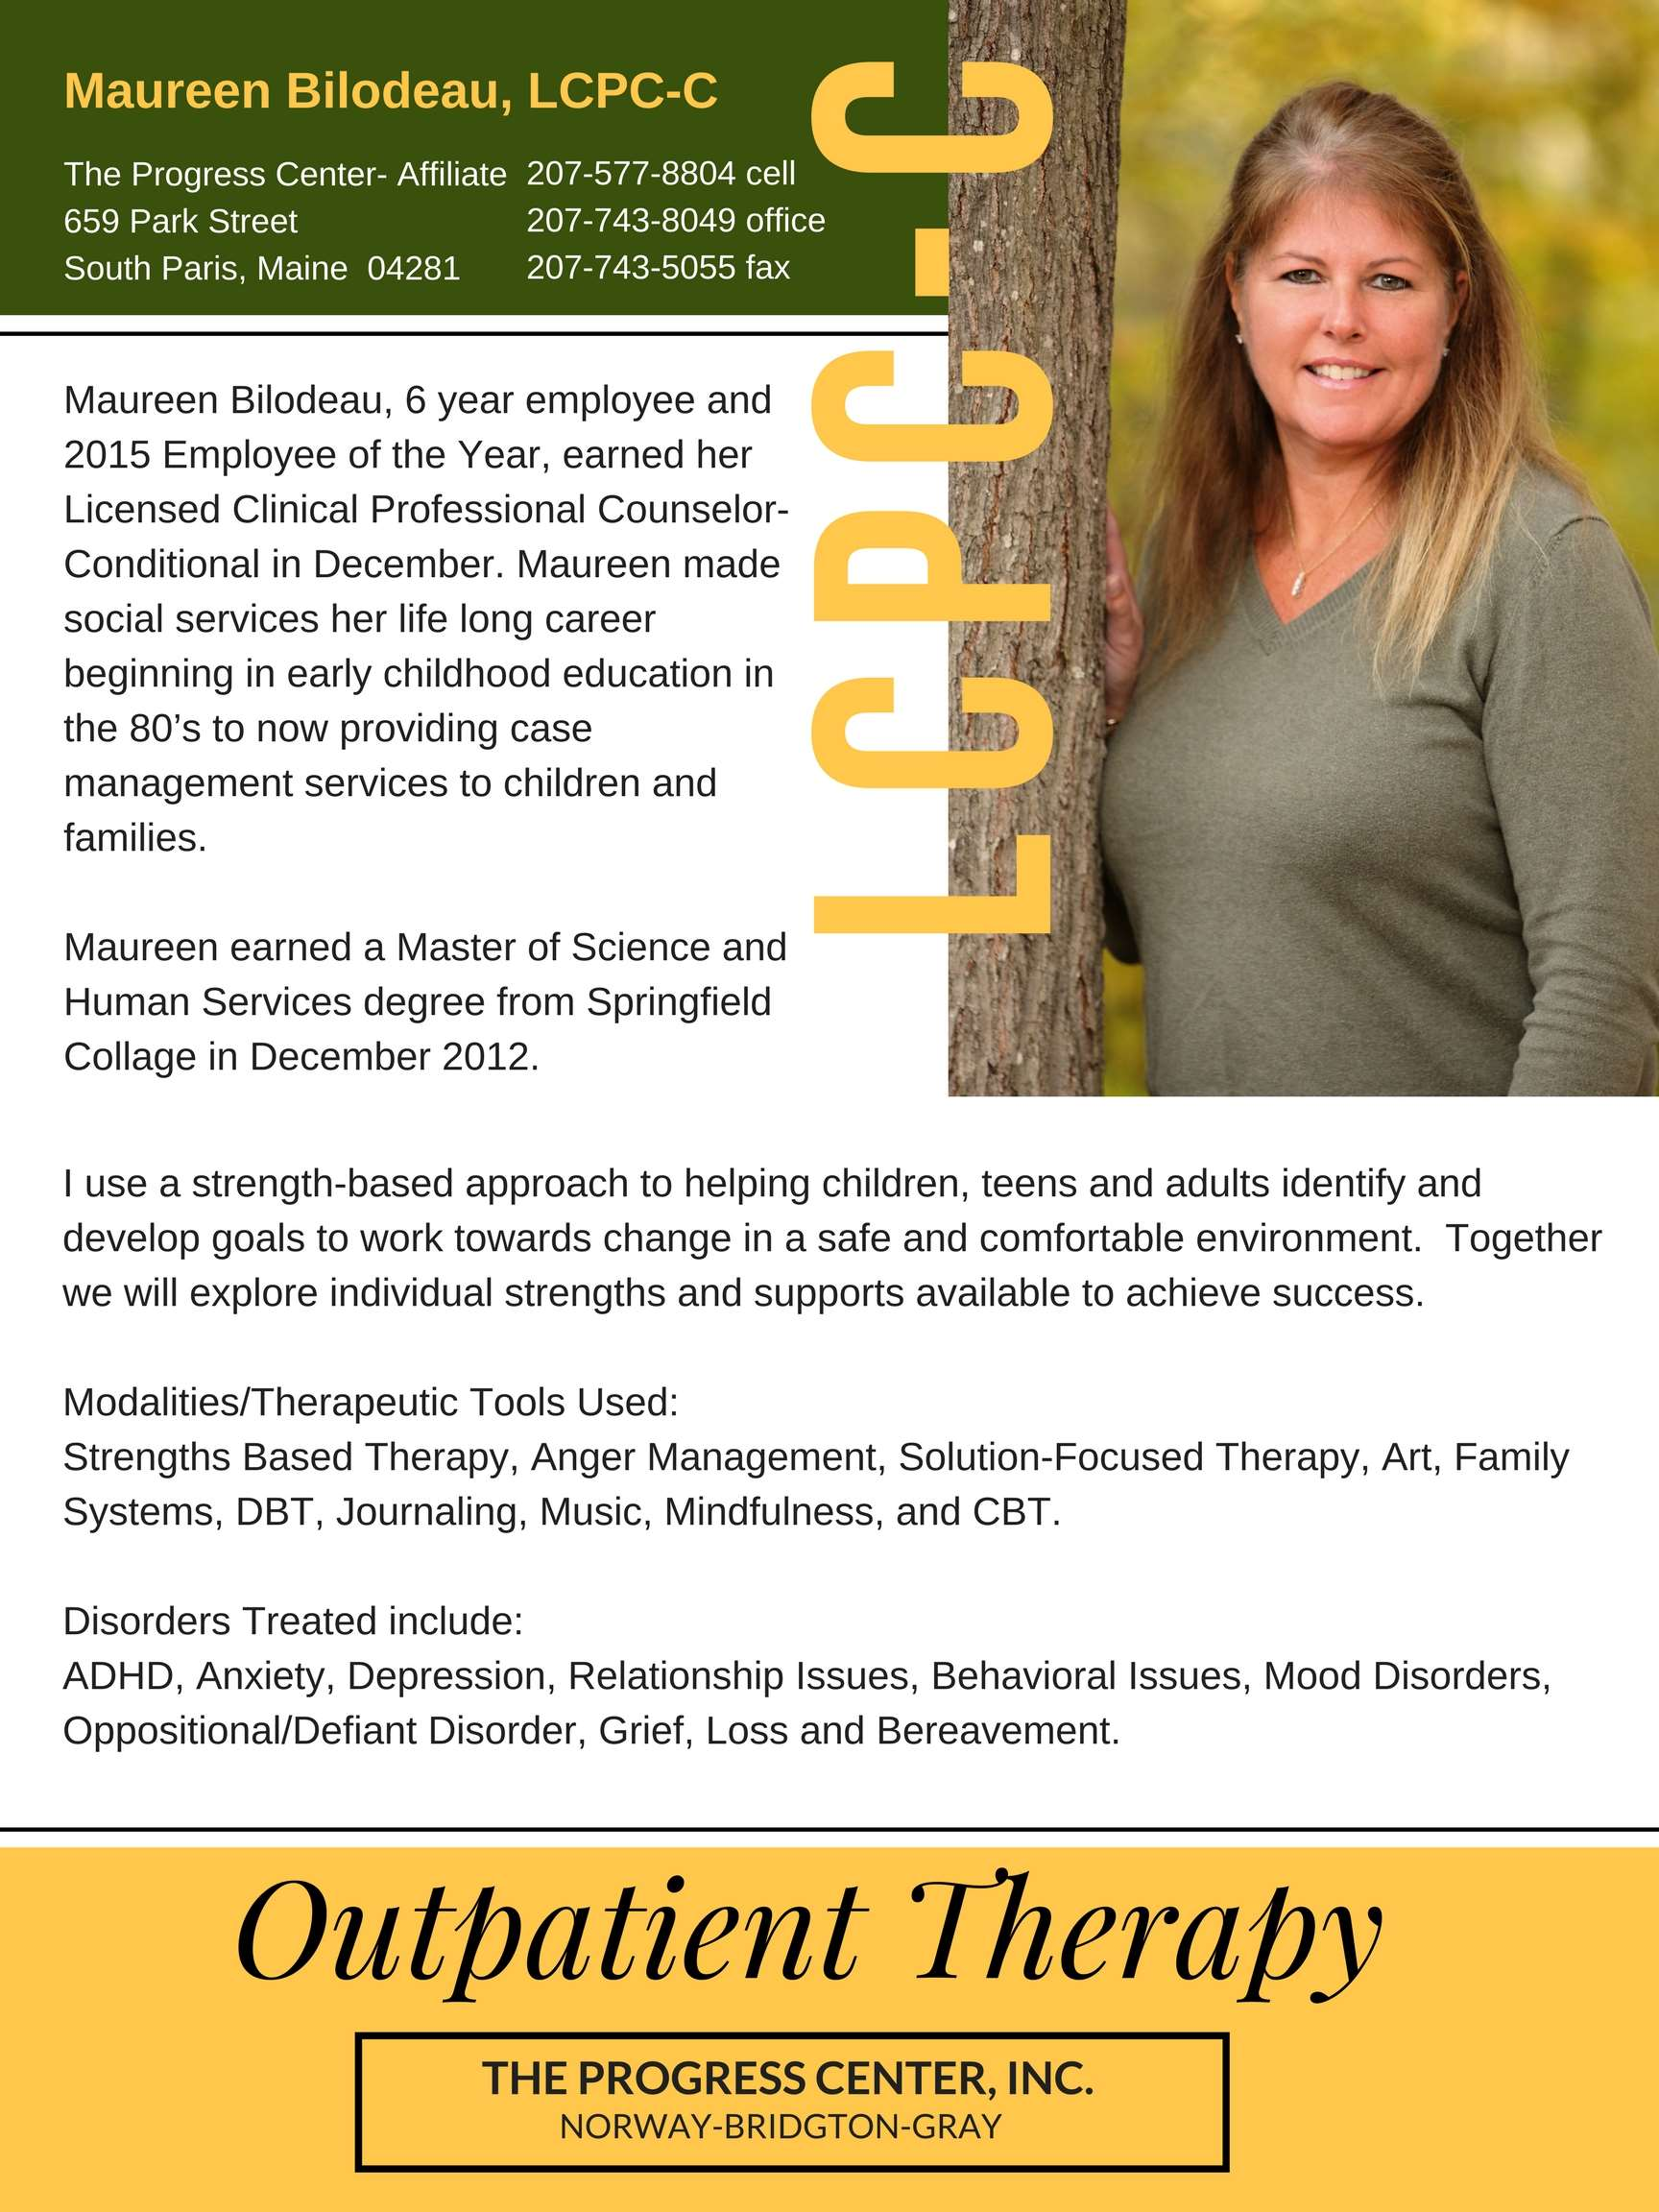 Outpatient Therapy Services